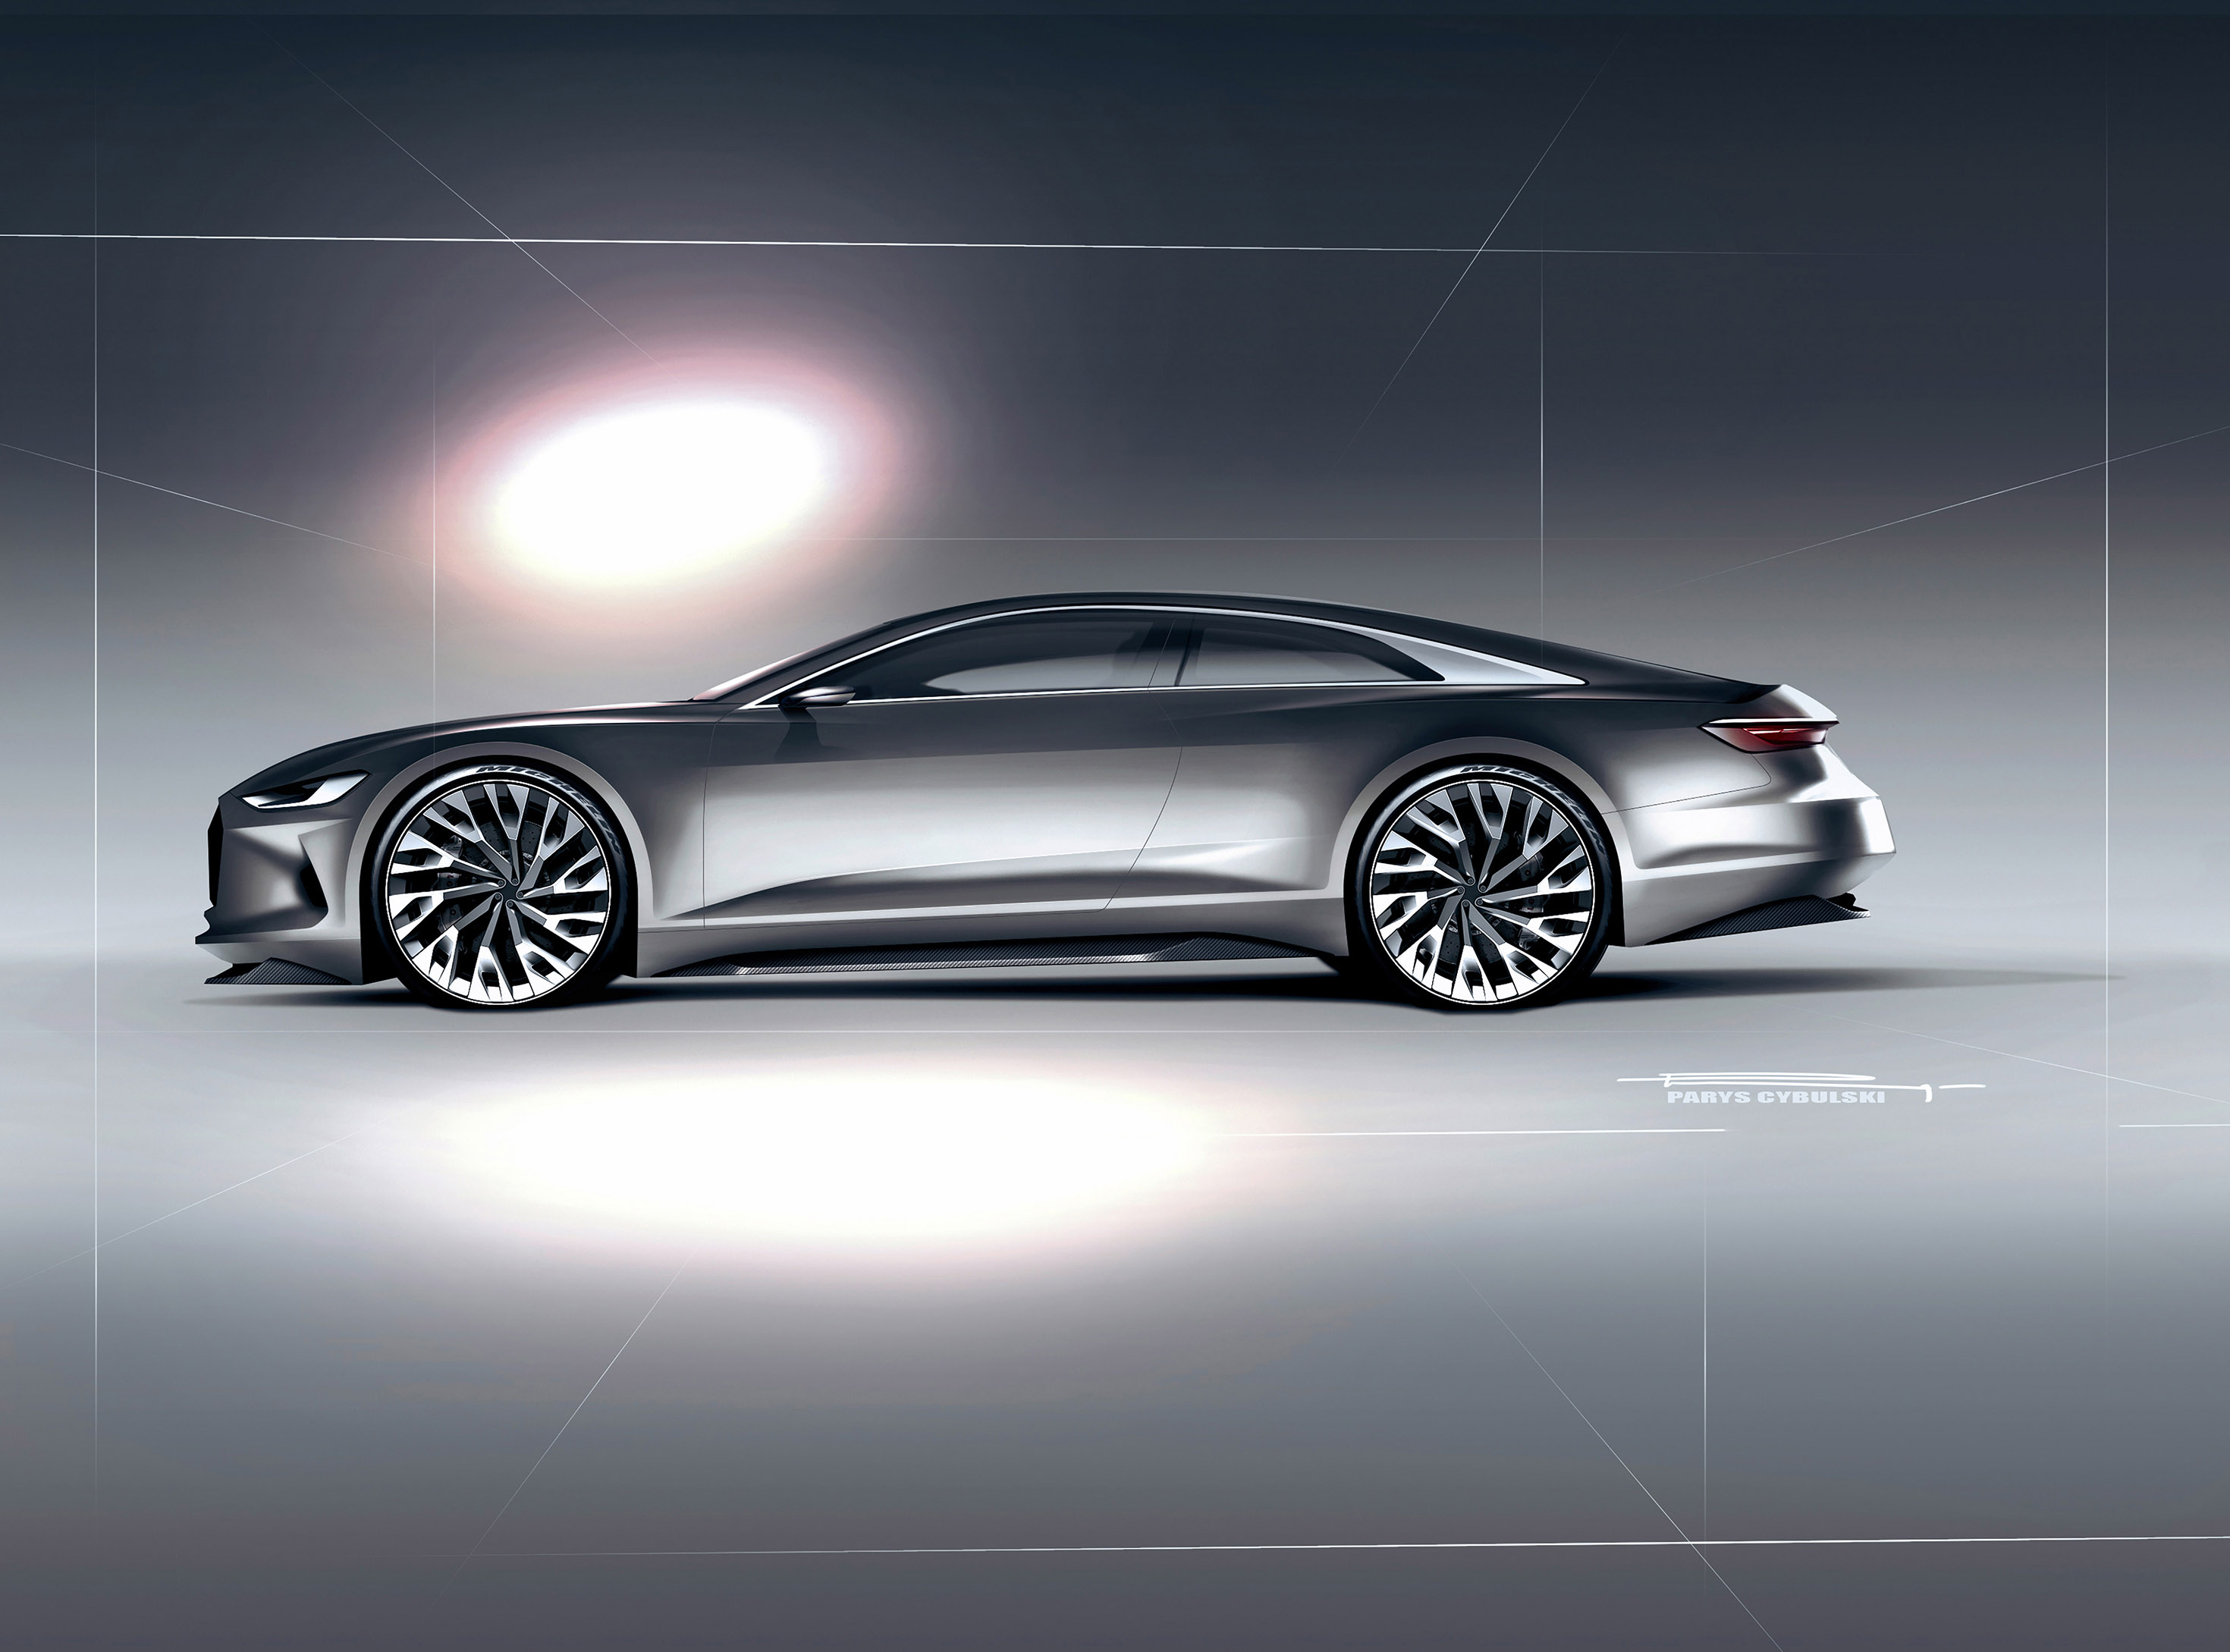 A Audi ConceptAudi A Concept Specification Price And Review - Audi a9 car price